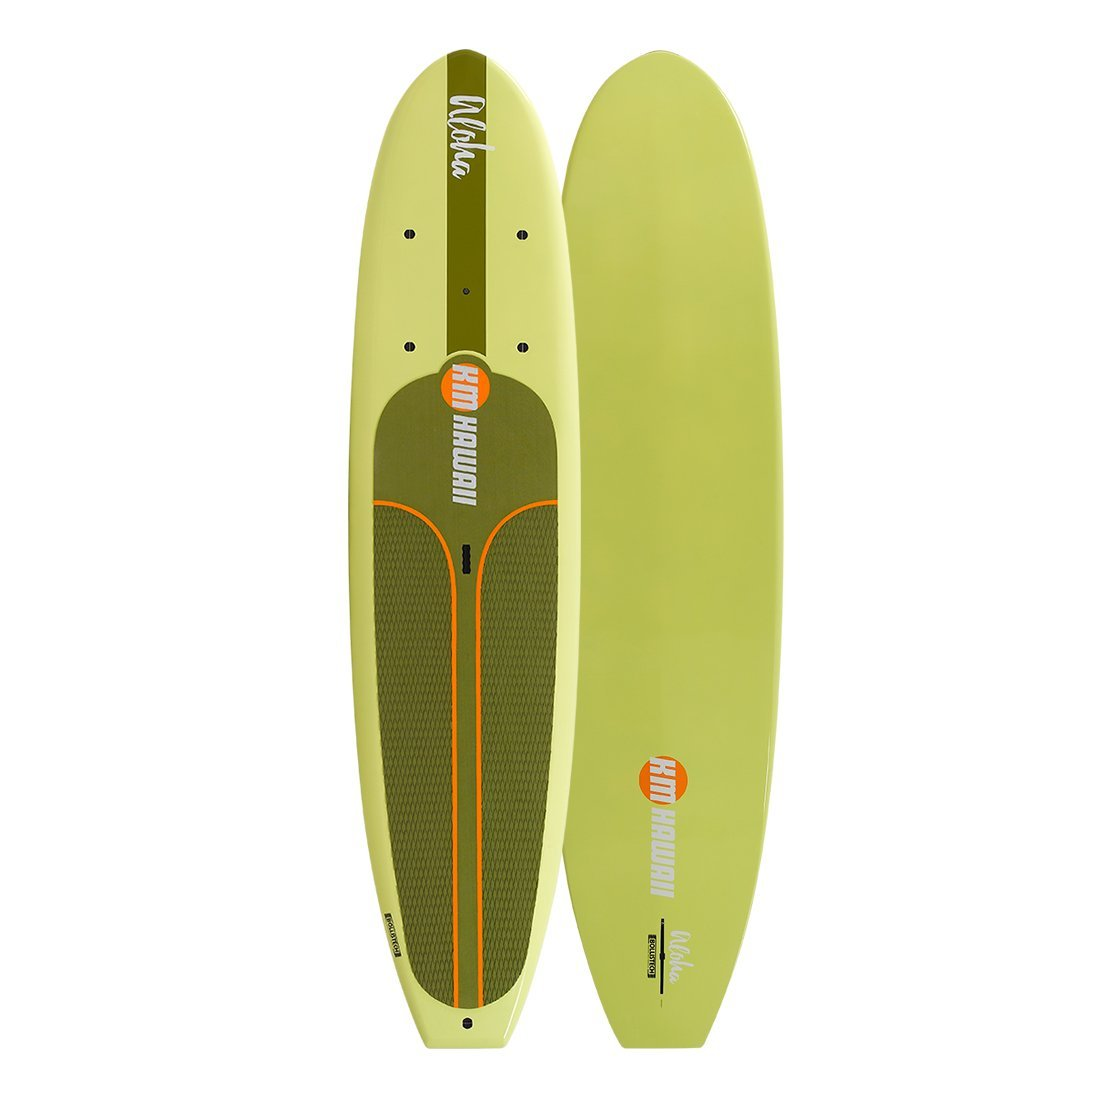 KM Hawaii Aloha All Arounder Standup Paddle Board Paddle Boards 4theoutdoors America US USA SUP outdoors